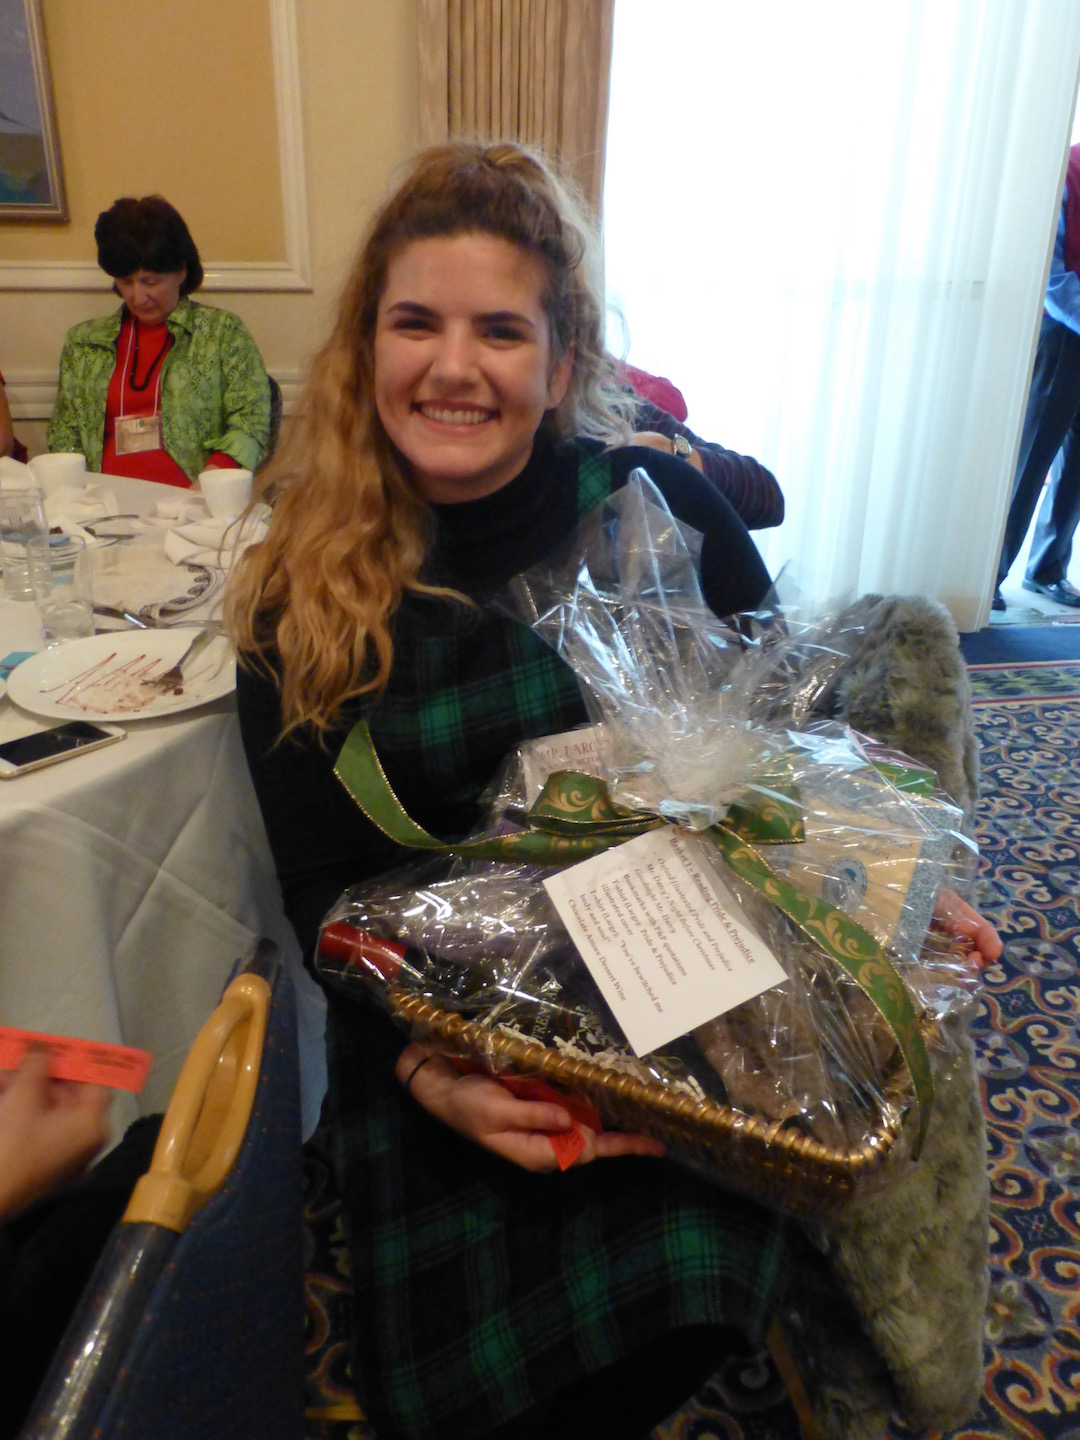 One of the winners of the basket raffle